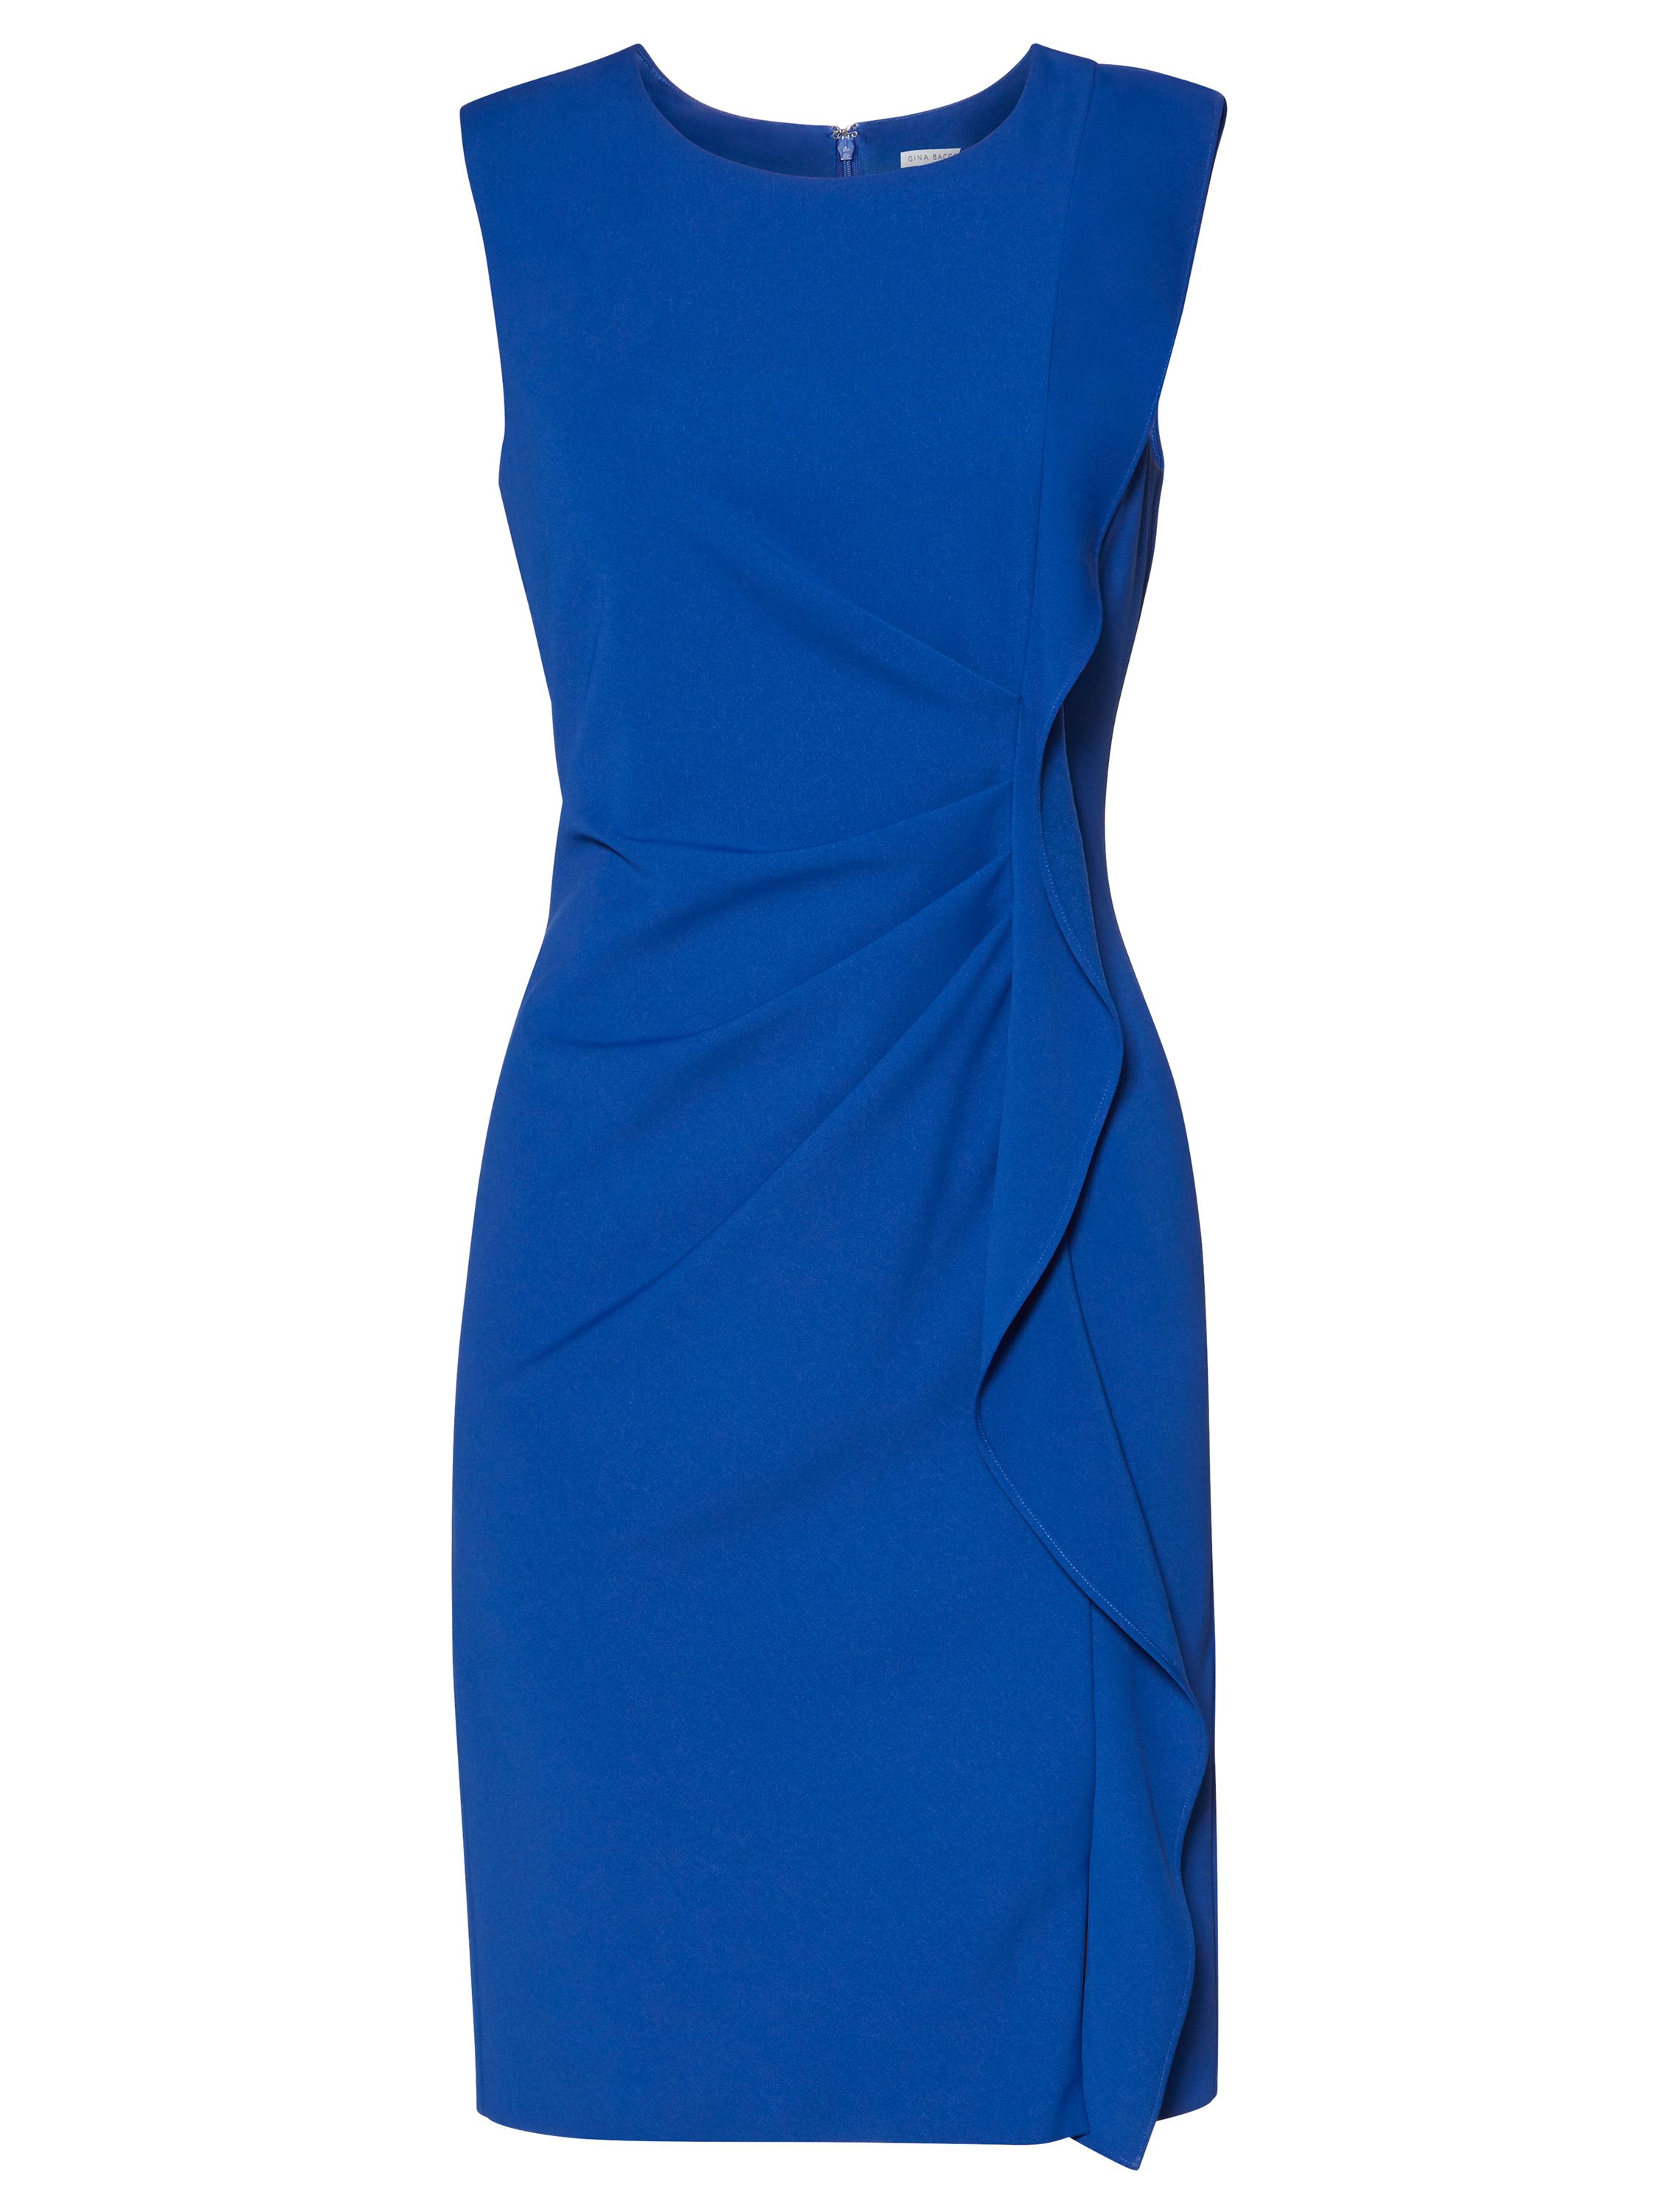 Gina Bacconi Naomi Frill Dress, Blue